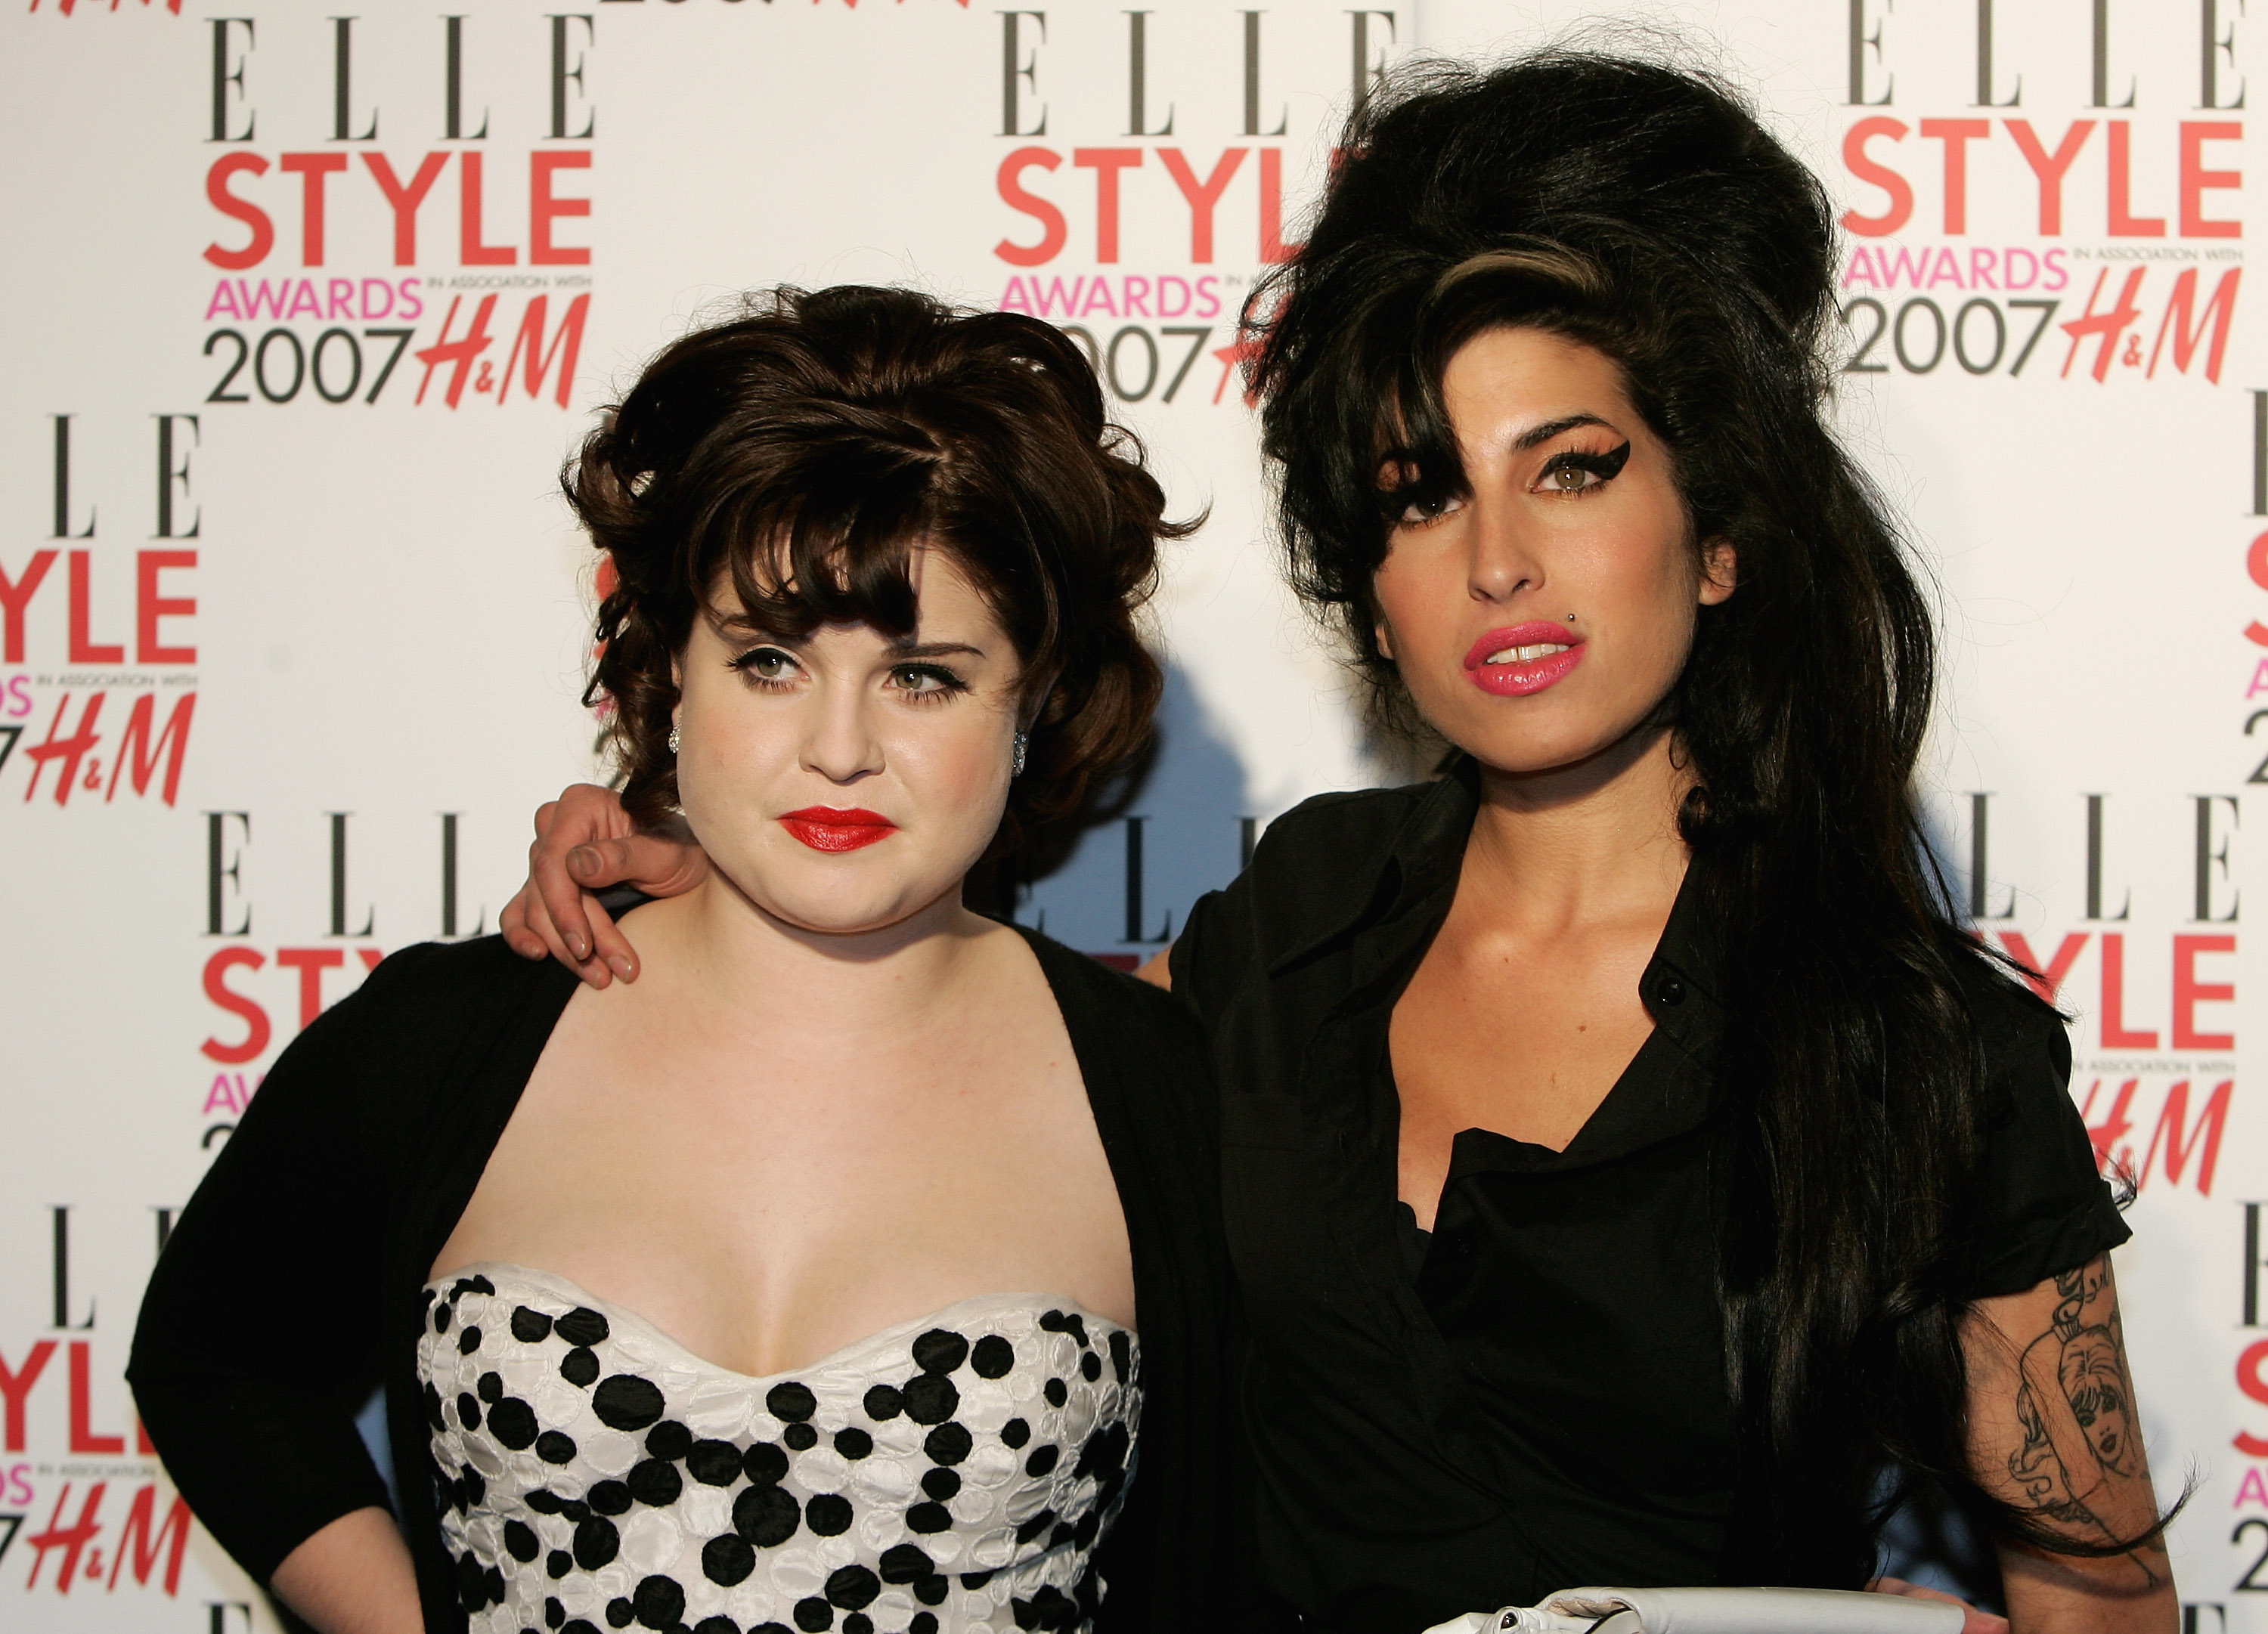 Kelly Osbourne marks 2 years of sobriety as mom Sharon sends her a cake